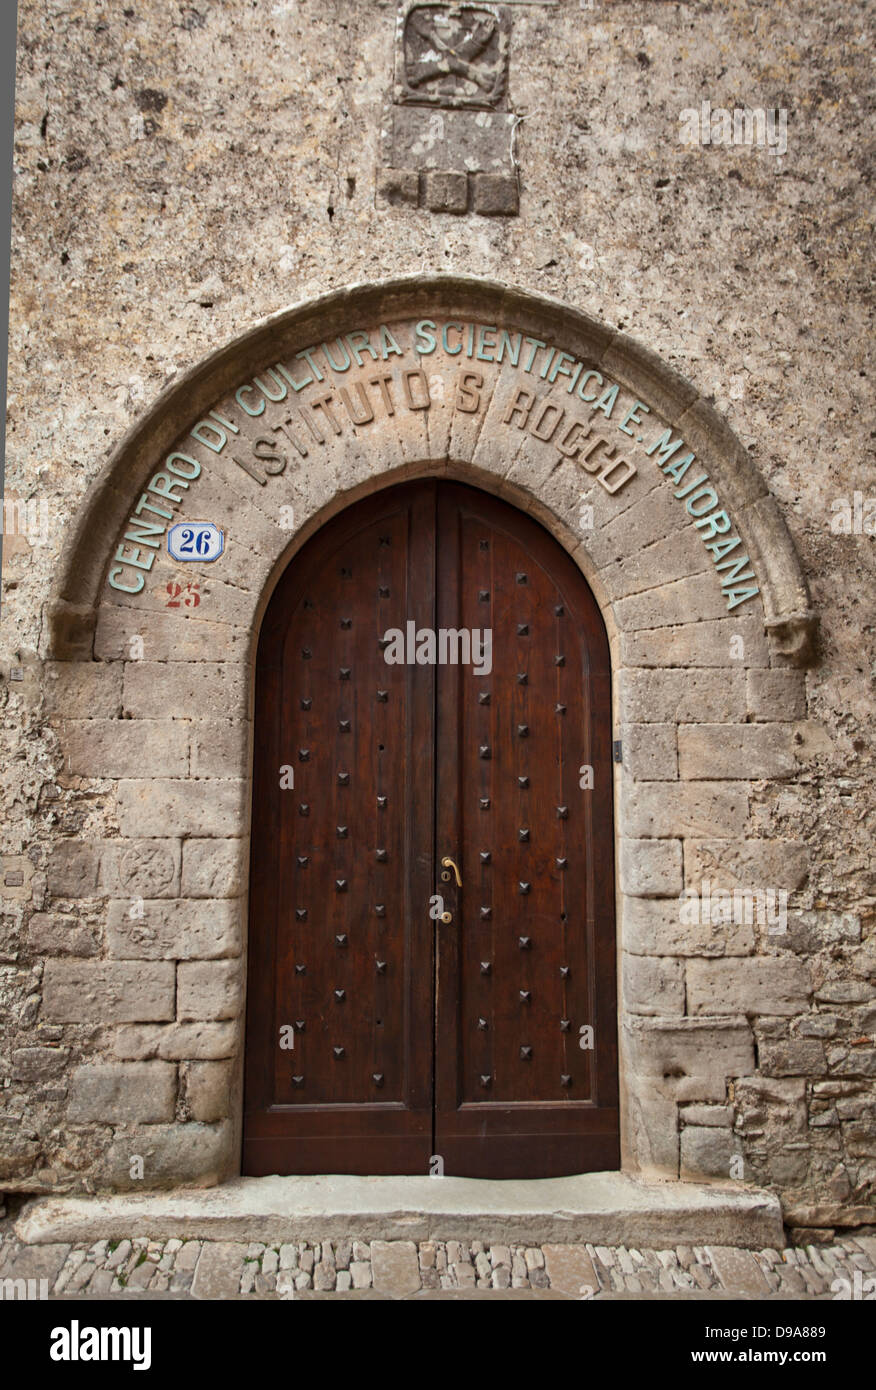 Entrance of the Institute S Rocco in Erice, Sicily. - Stock Image